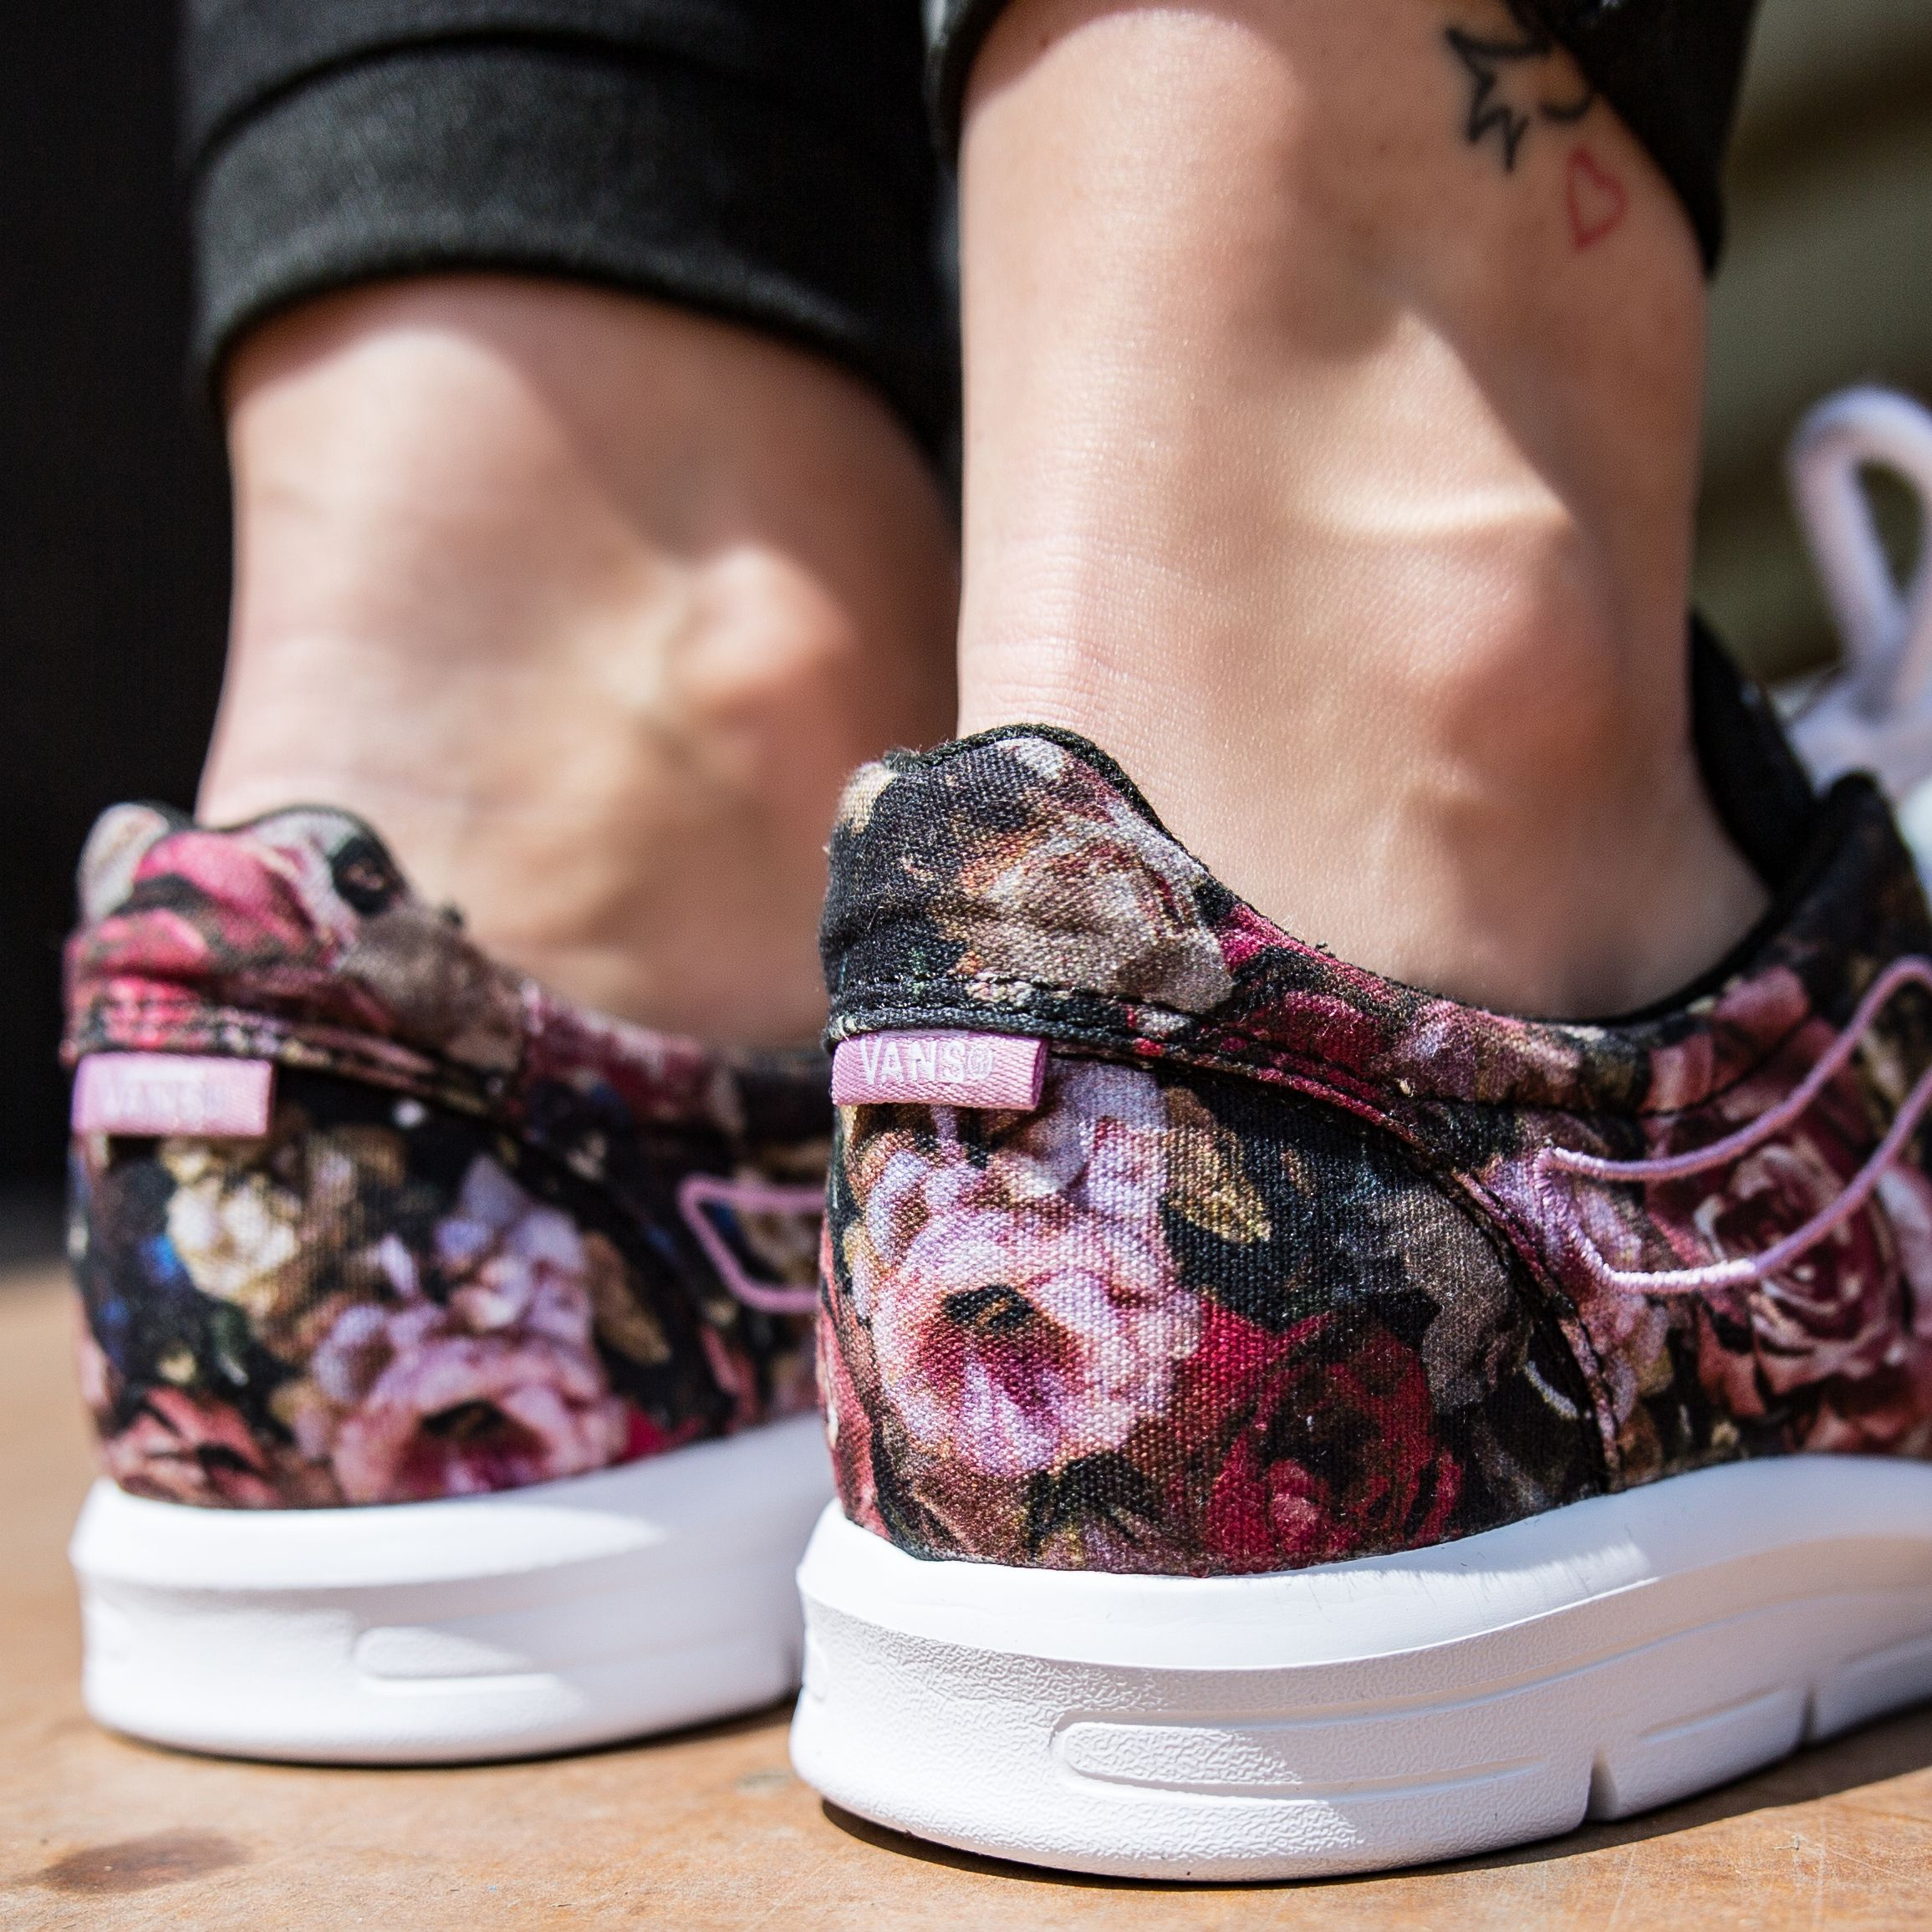 e291500f19 Vans Iso 1.5 (Moody Floral) Blk-TW